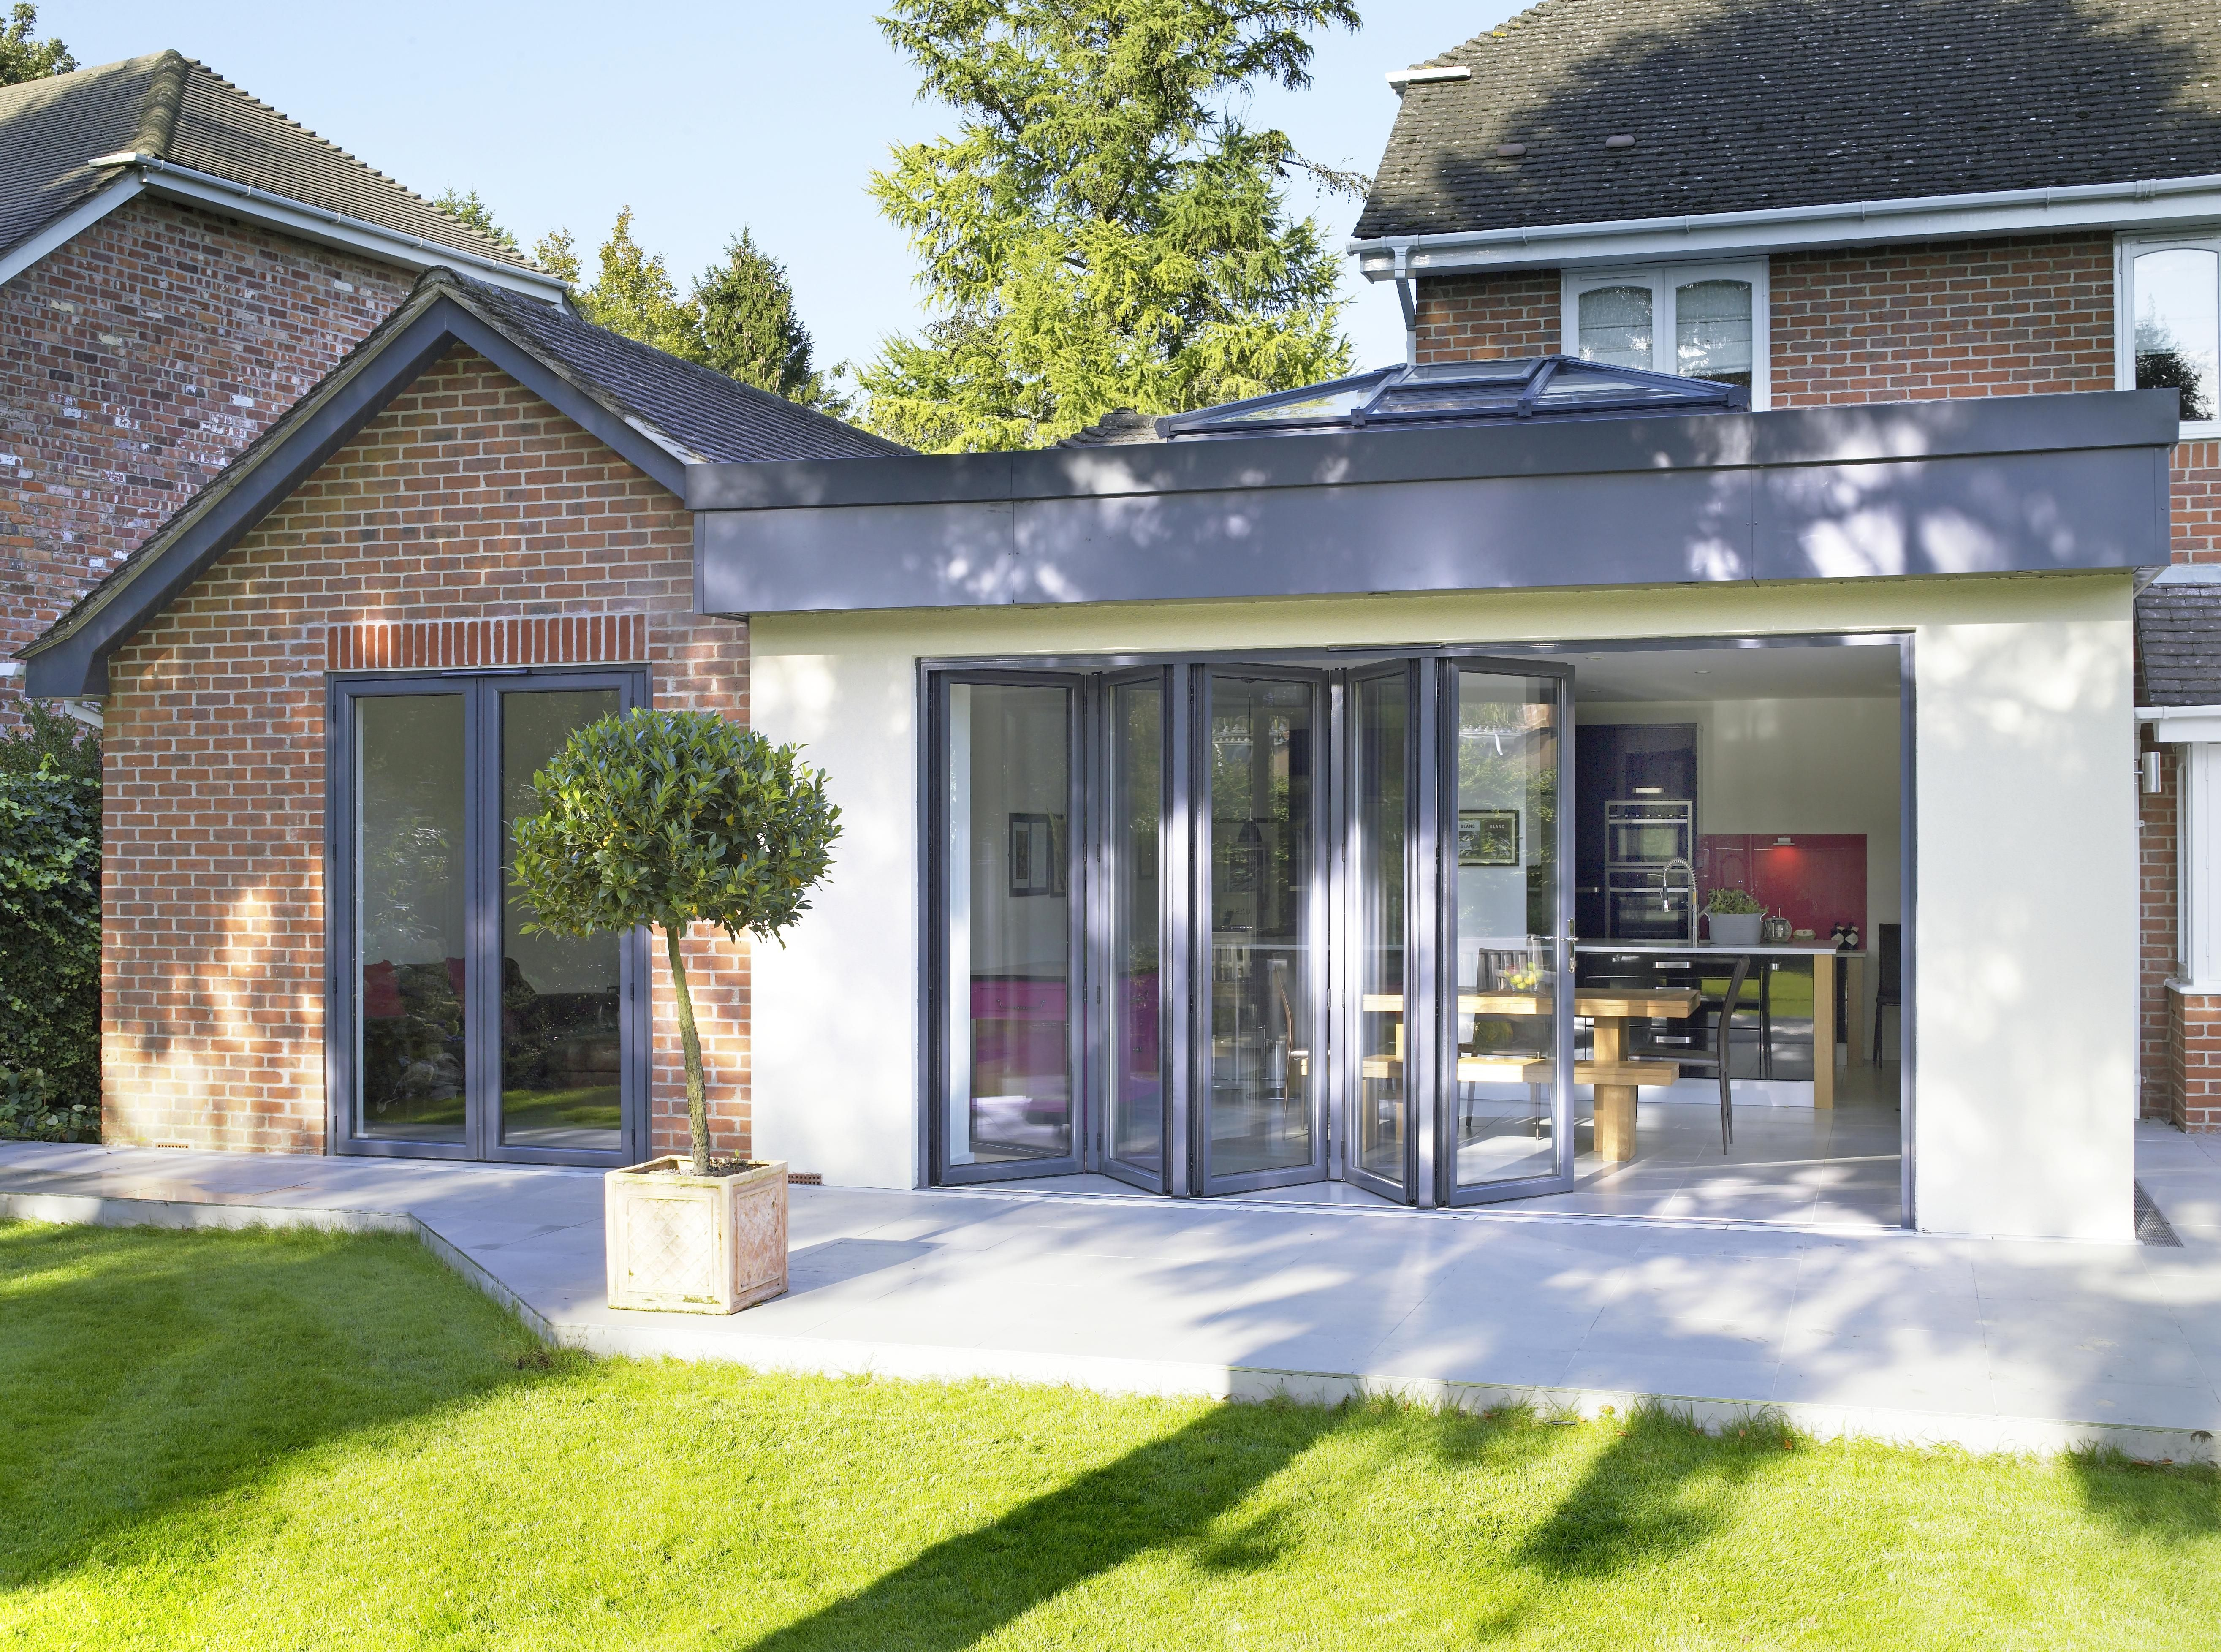 Pin by gel m on house extension pinterest extensions for Orangery ideas uk